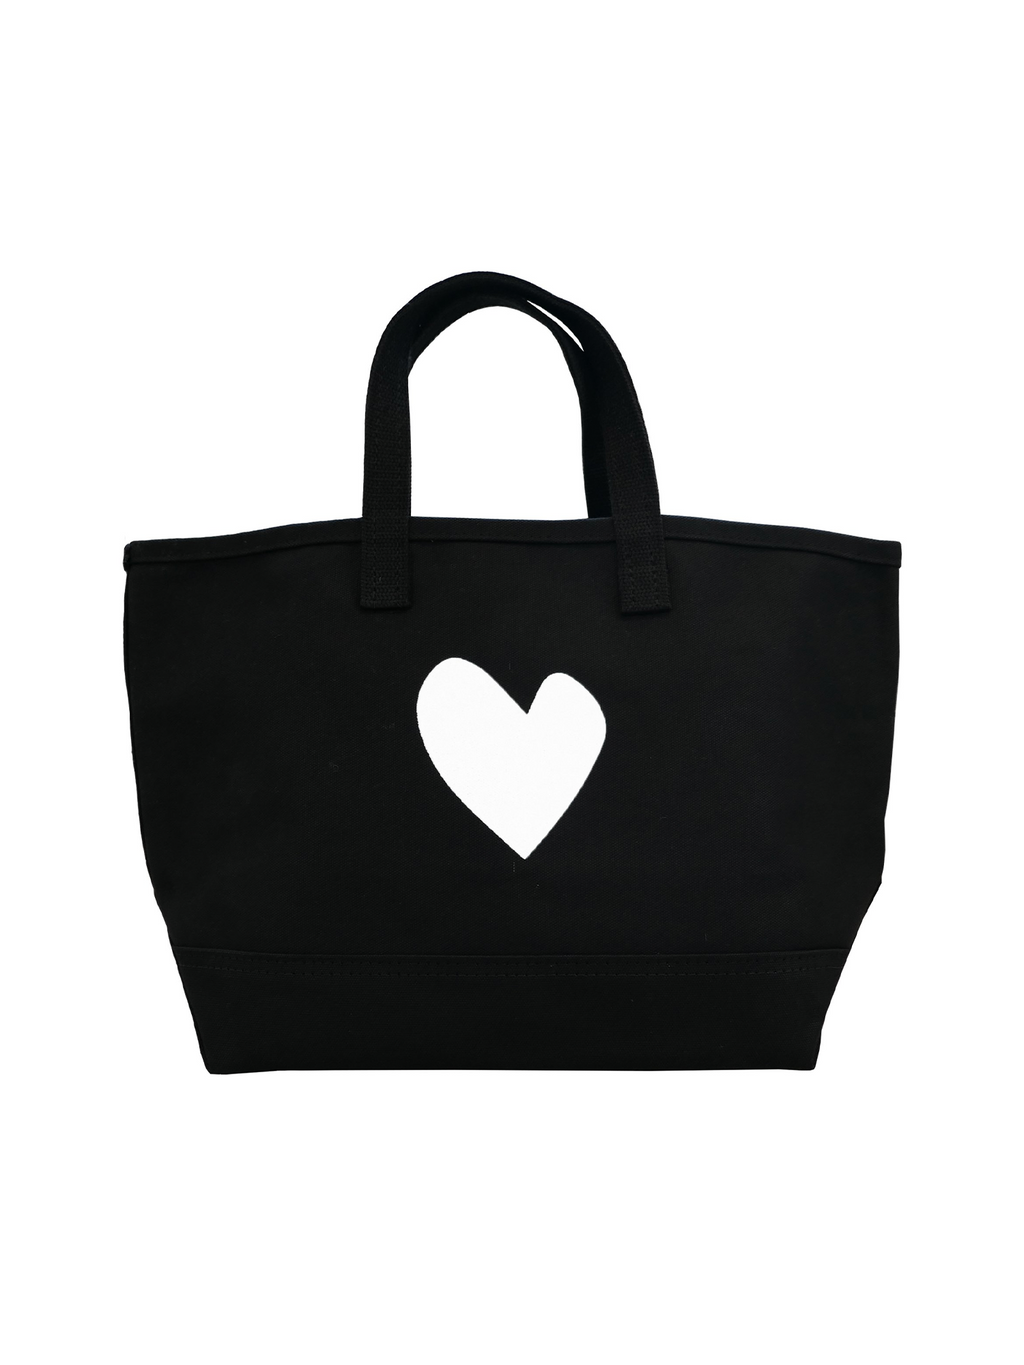 Kerri Rosenthal Imperfect Heart Tote Bag